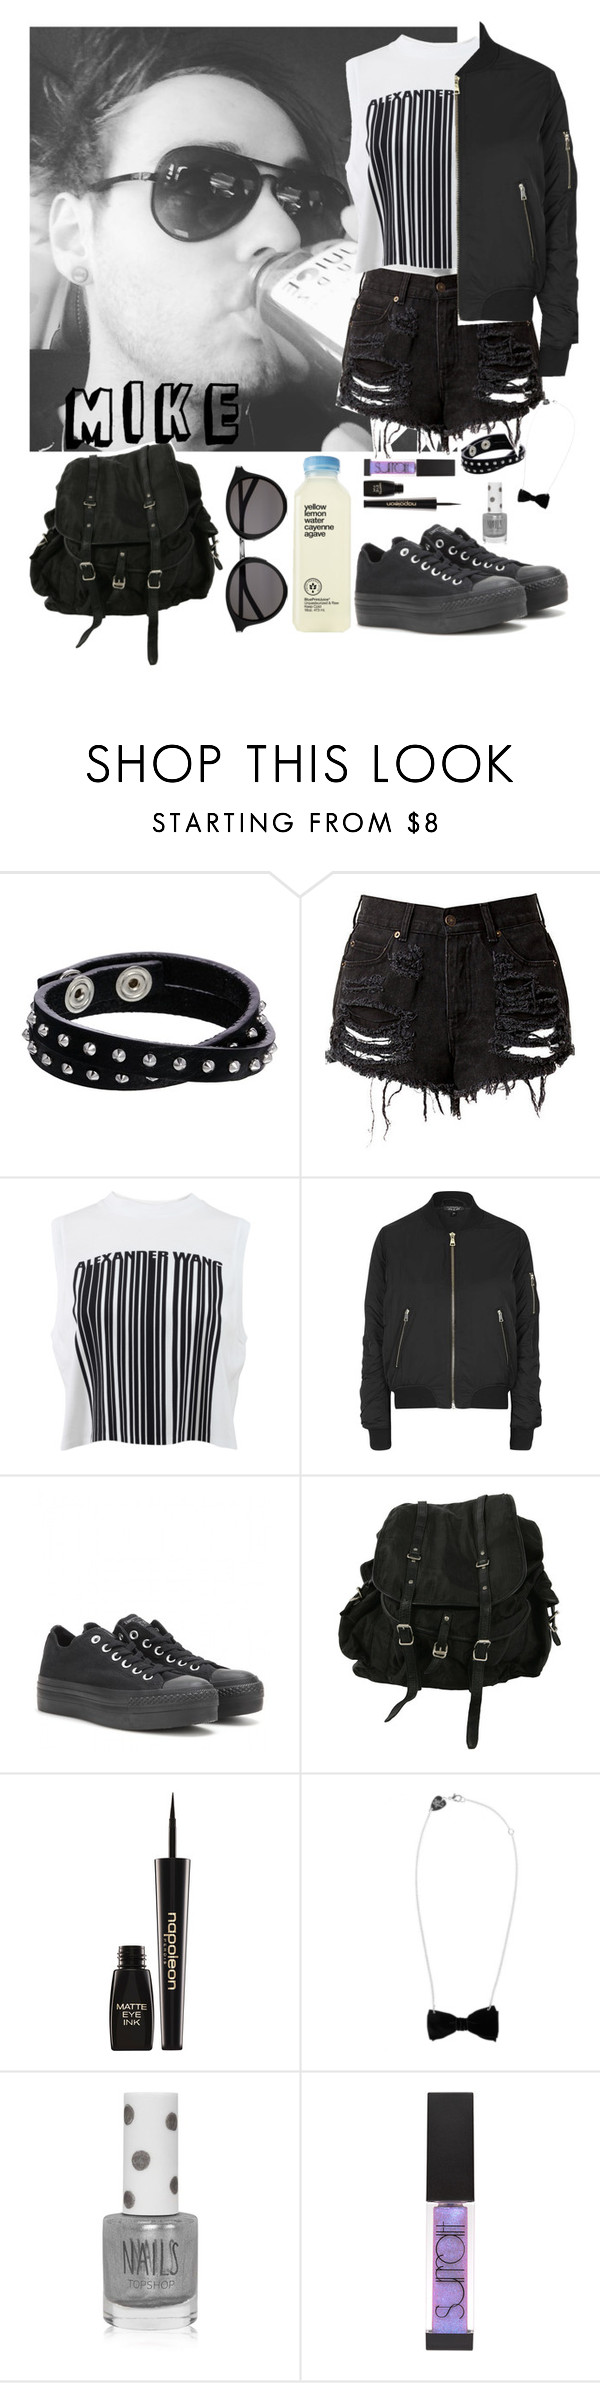 """Mike's day"" by romii5sos ❤ liked on Polyvore featuring Diesel, Alexander Wang, Topshop, Converse, AllSaints, Napoleon Perdis, Tatty Devine, Surratt and Yves Saint Laurent"